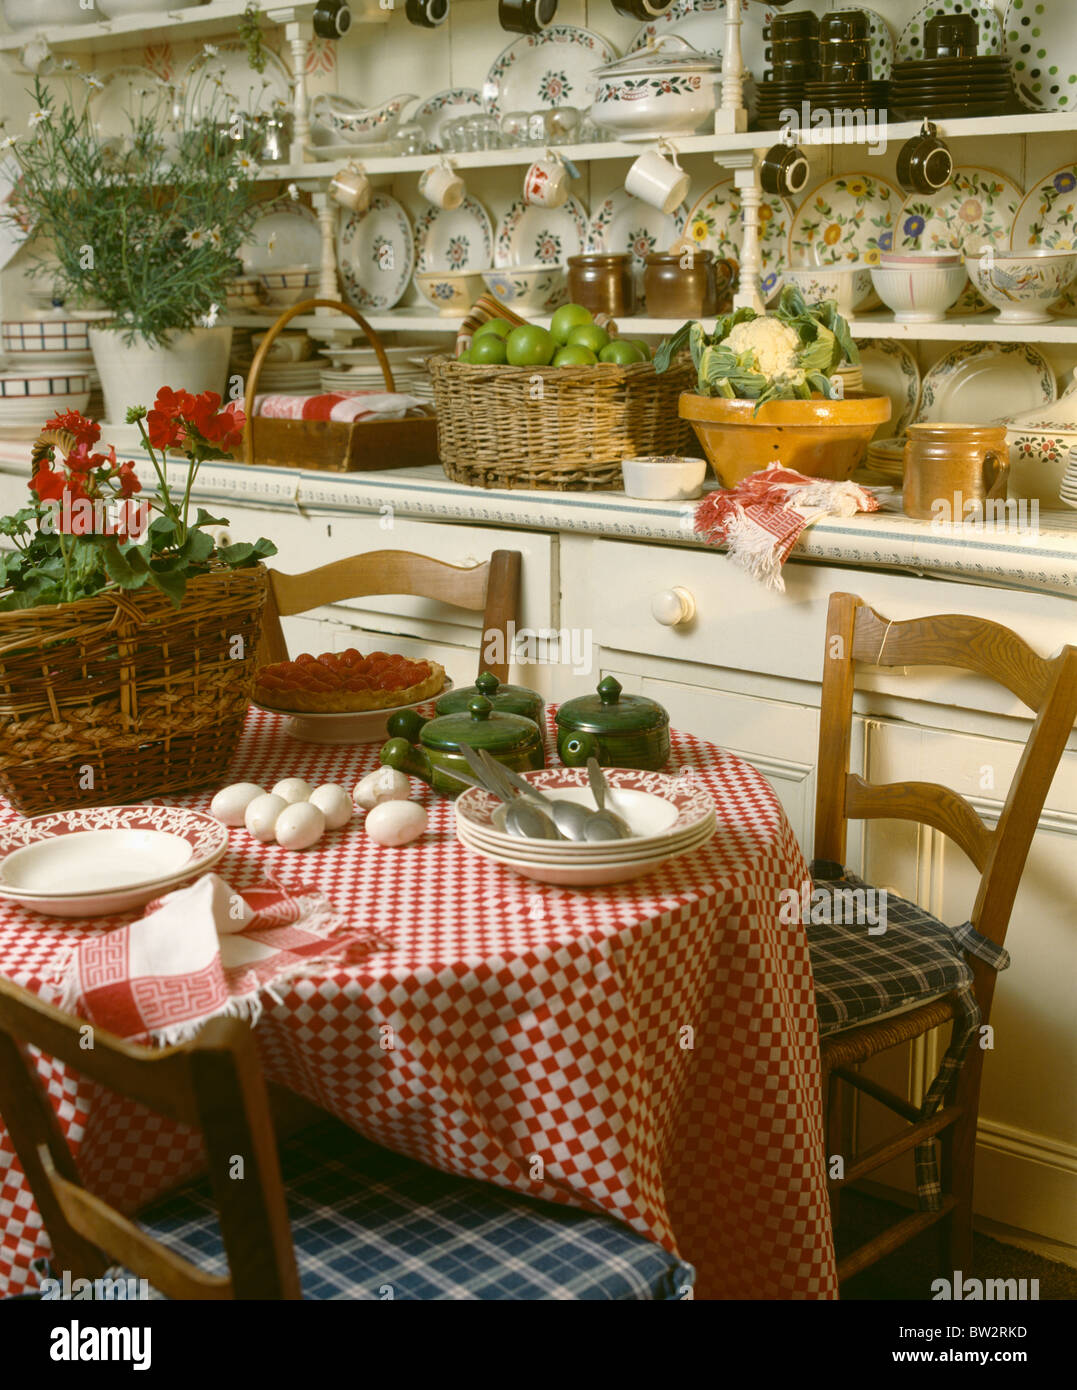 Red Checked Cloth On Circular Table In Cottage Kitchen Dining Room With Crockery Large Dresser